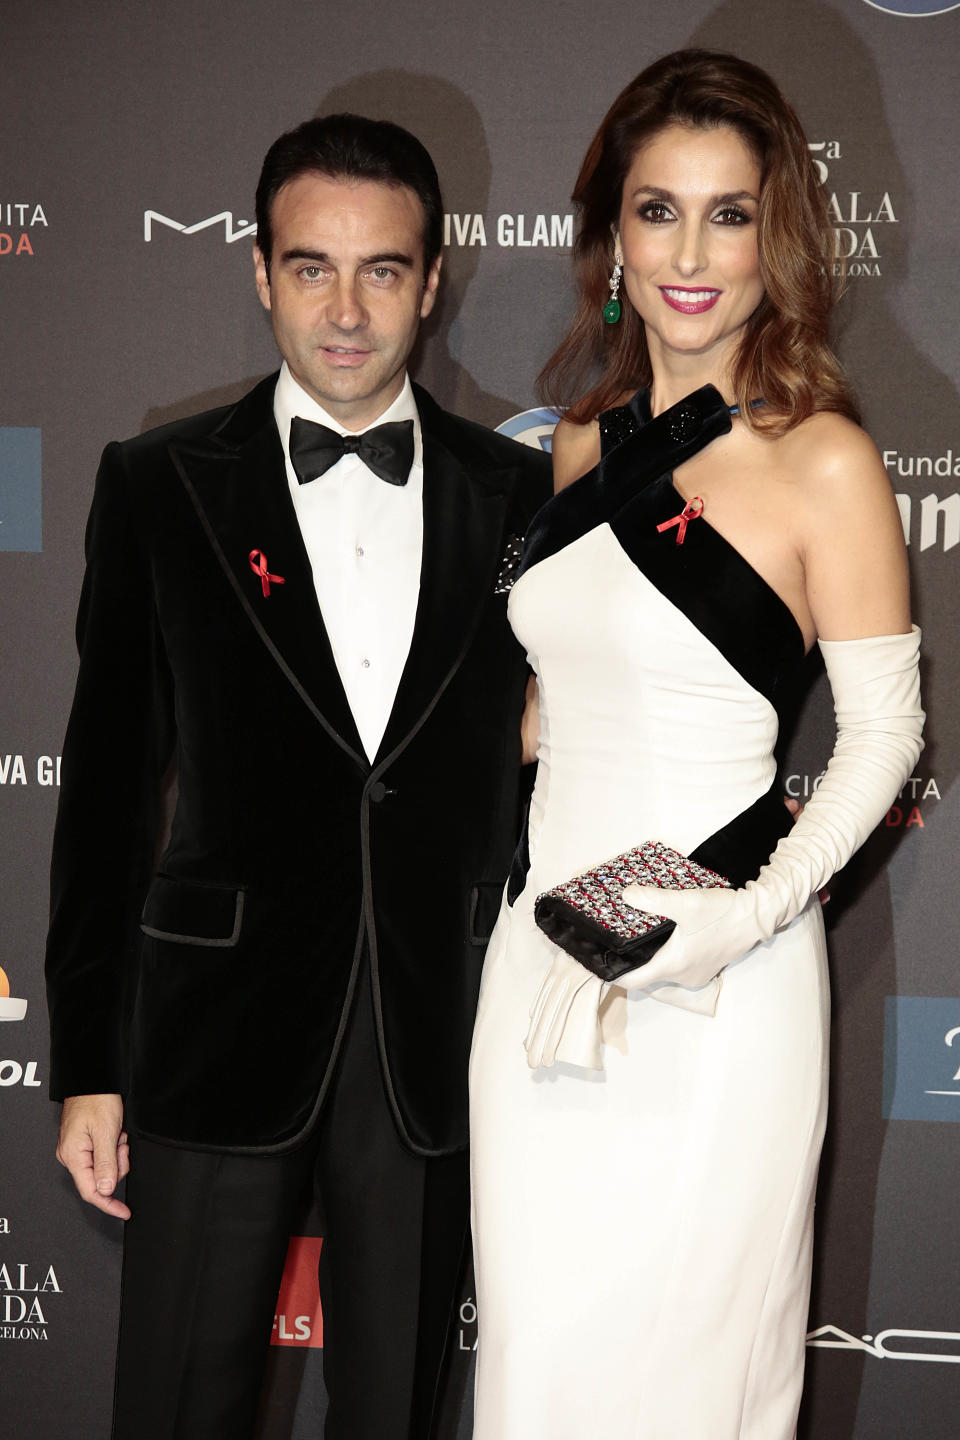 BARCELONA, SPAIN - NOVEMBER 24:  (L-R) Enrique Ponce and Paloma Cuevas pose during a photocall for 'Fifth Gala Against HIV 2014' at the Museu Nacional d'Art de Catalunya on November 24, 2014 in Barcelona, Spain.  (Photo by Miquel Benitez/WireImage)